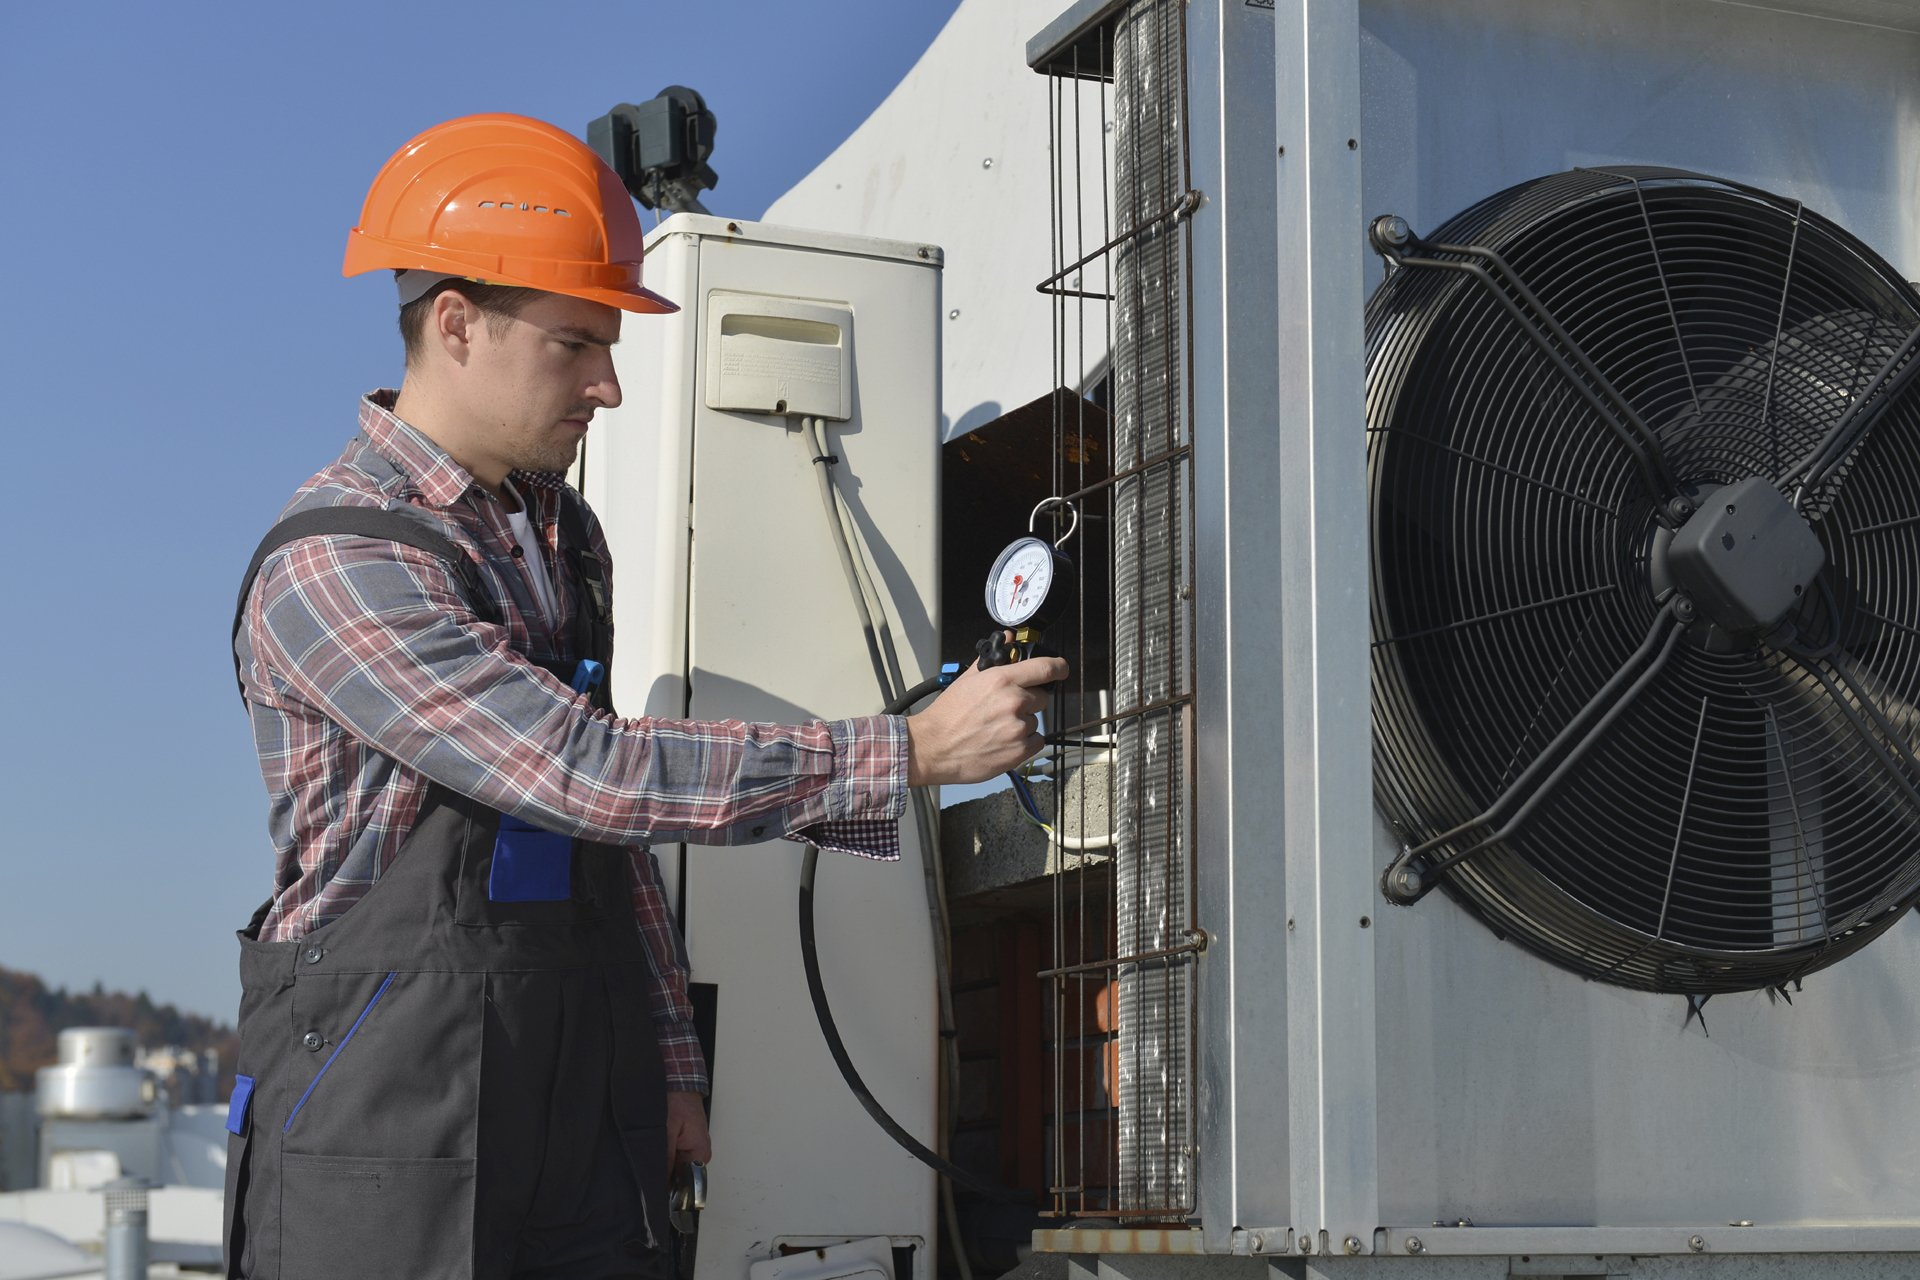 Air Conditioning Repair services by A.J. Leto & Sons